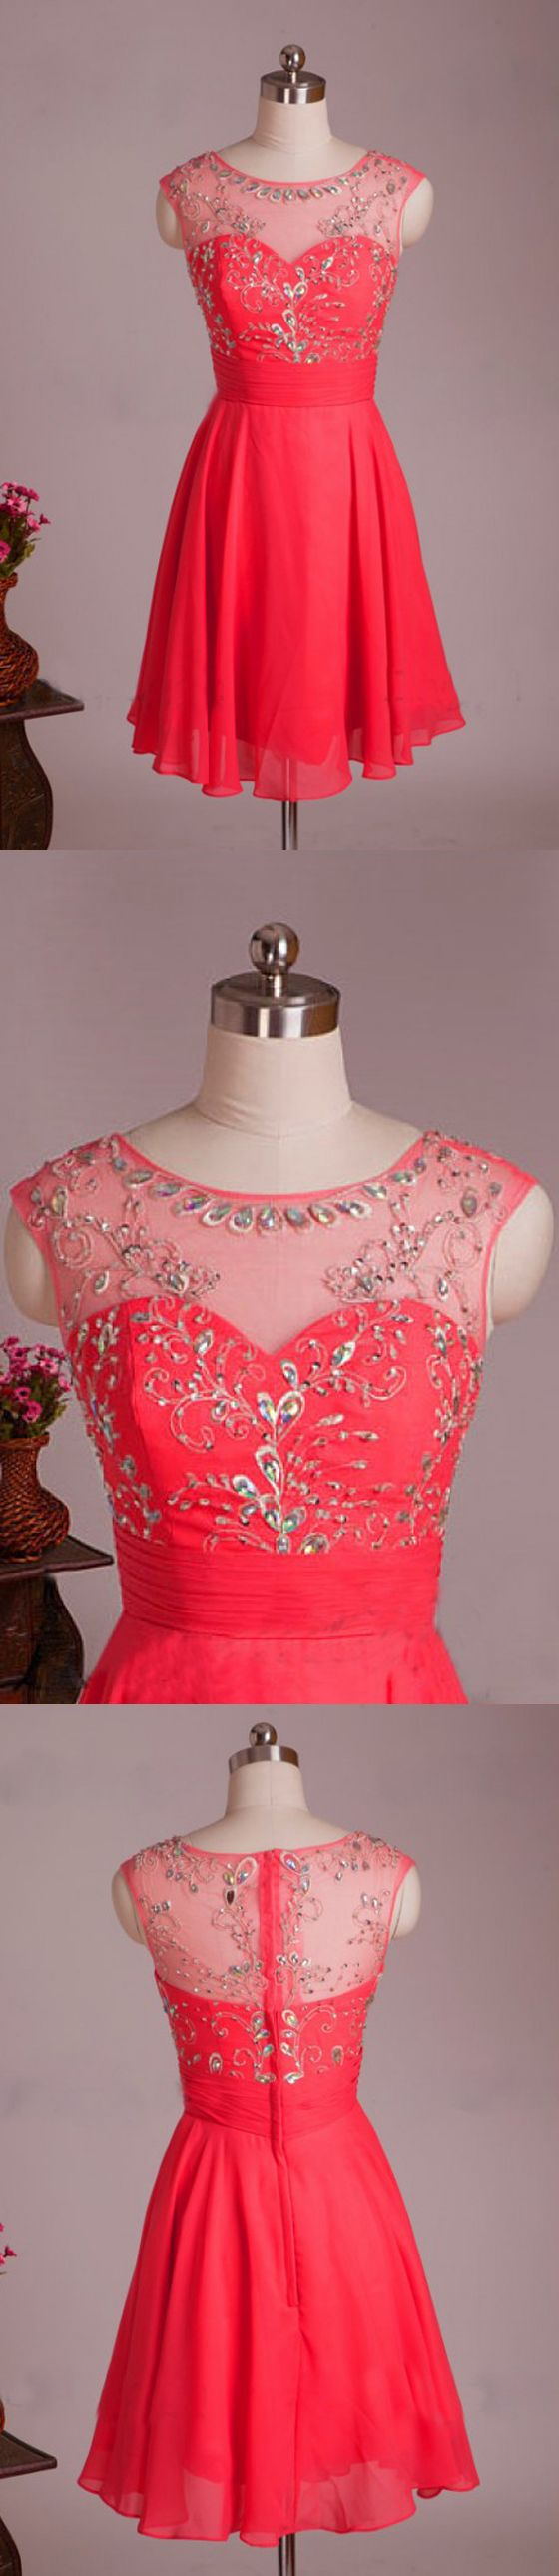 best dresses skirts shirts shoes and shorts for girls images